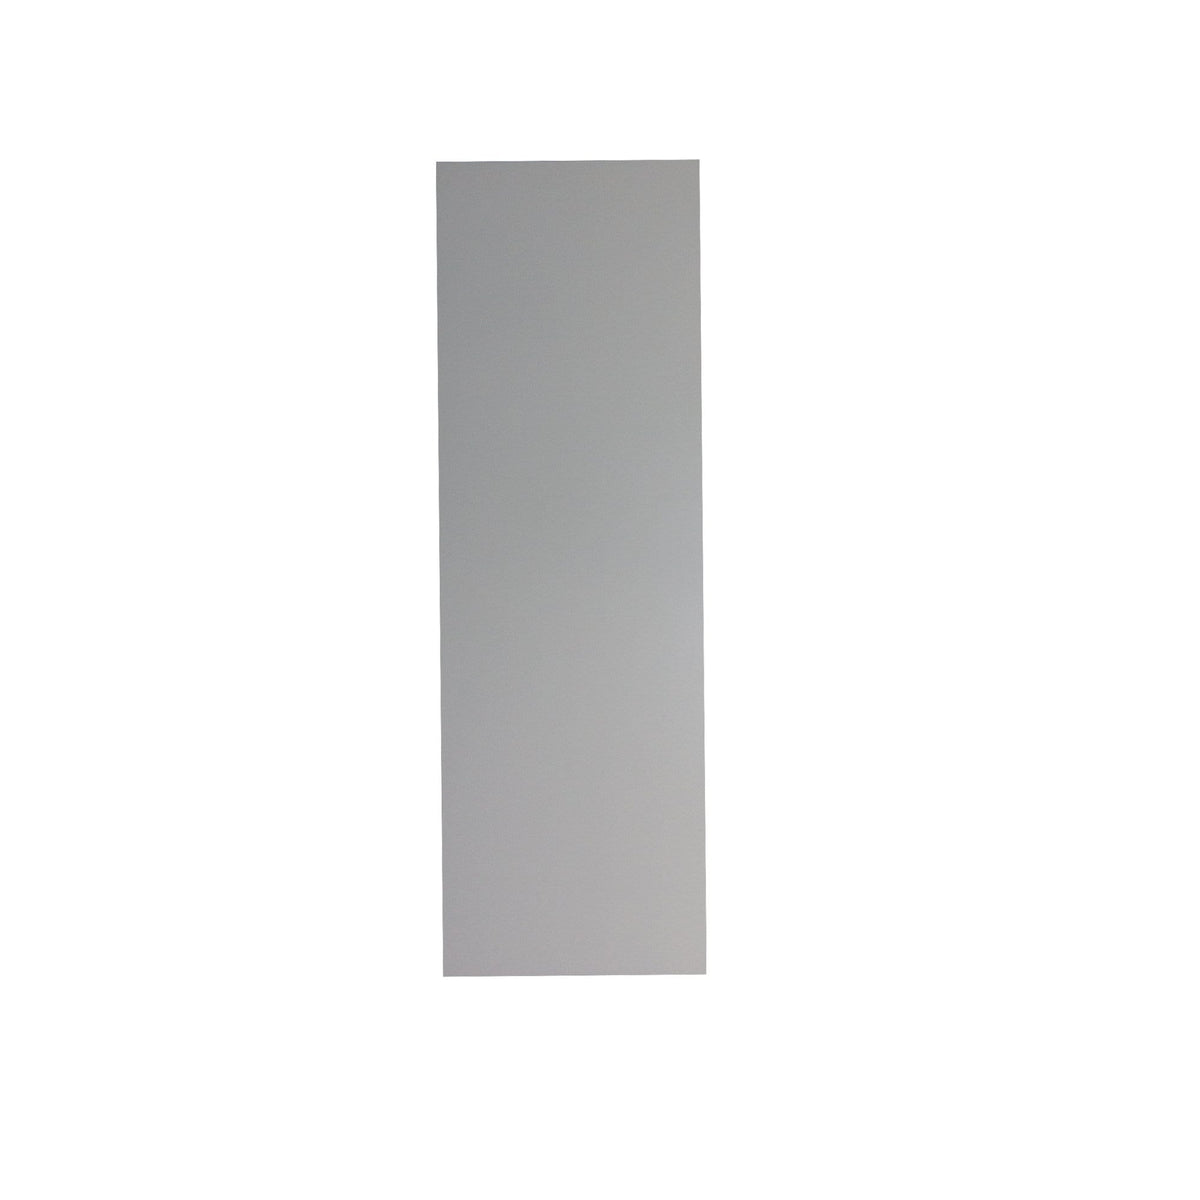 "Wall Cabinet 36"" Wide 24"" Deep Light Gray Inset Shaker Refrigerator Wall Cabinet - Double Door 12"", 15"", 18"", 21"" & 24"" Tall D2PNL2496-1/2 Inset Kitchen Cabinets"